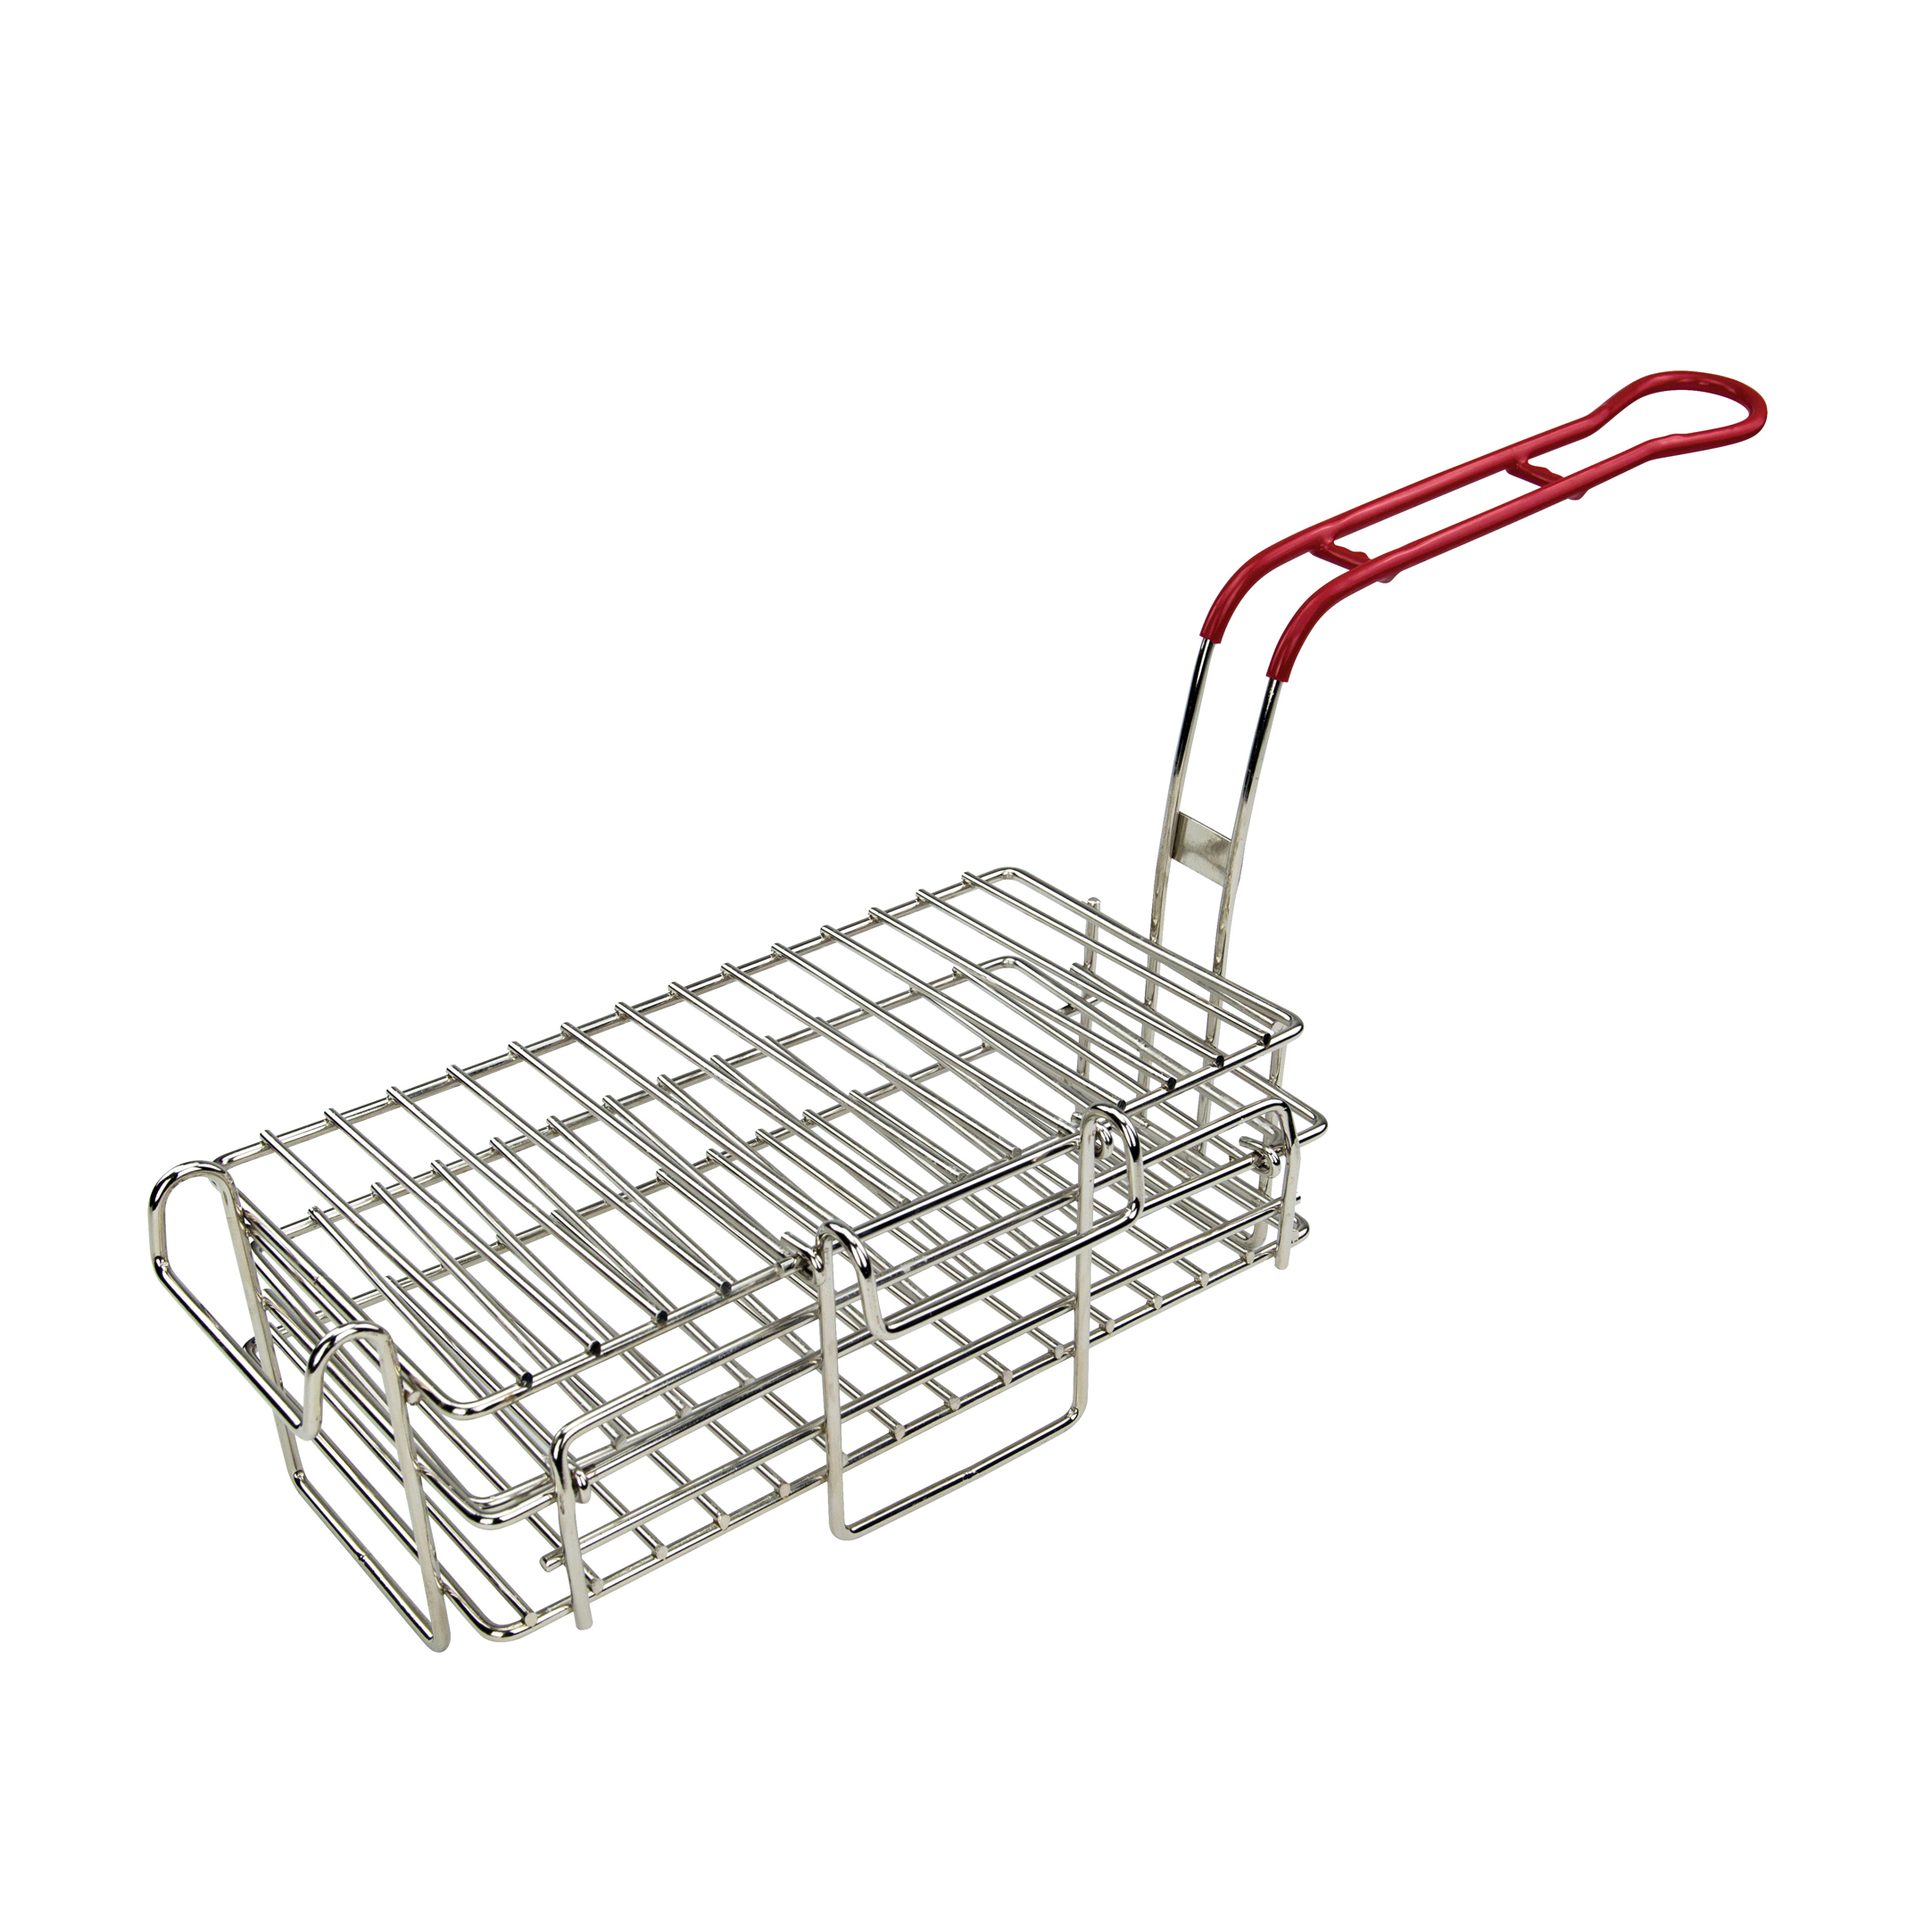 Winco FB-03 fryer basket